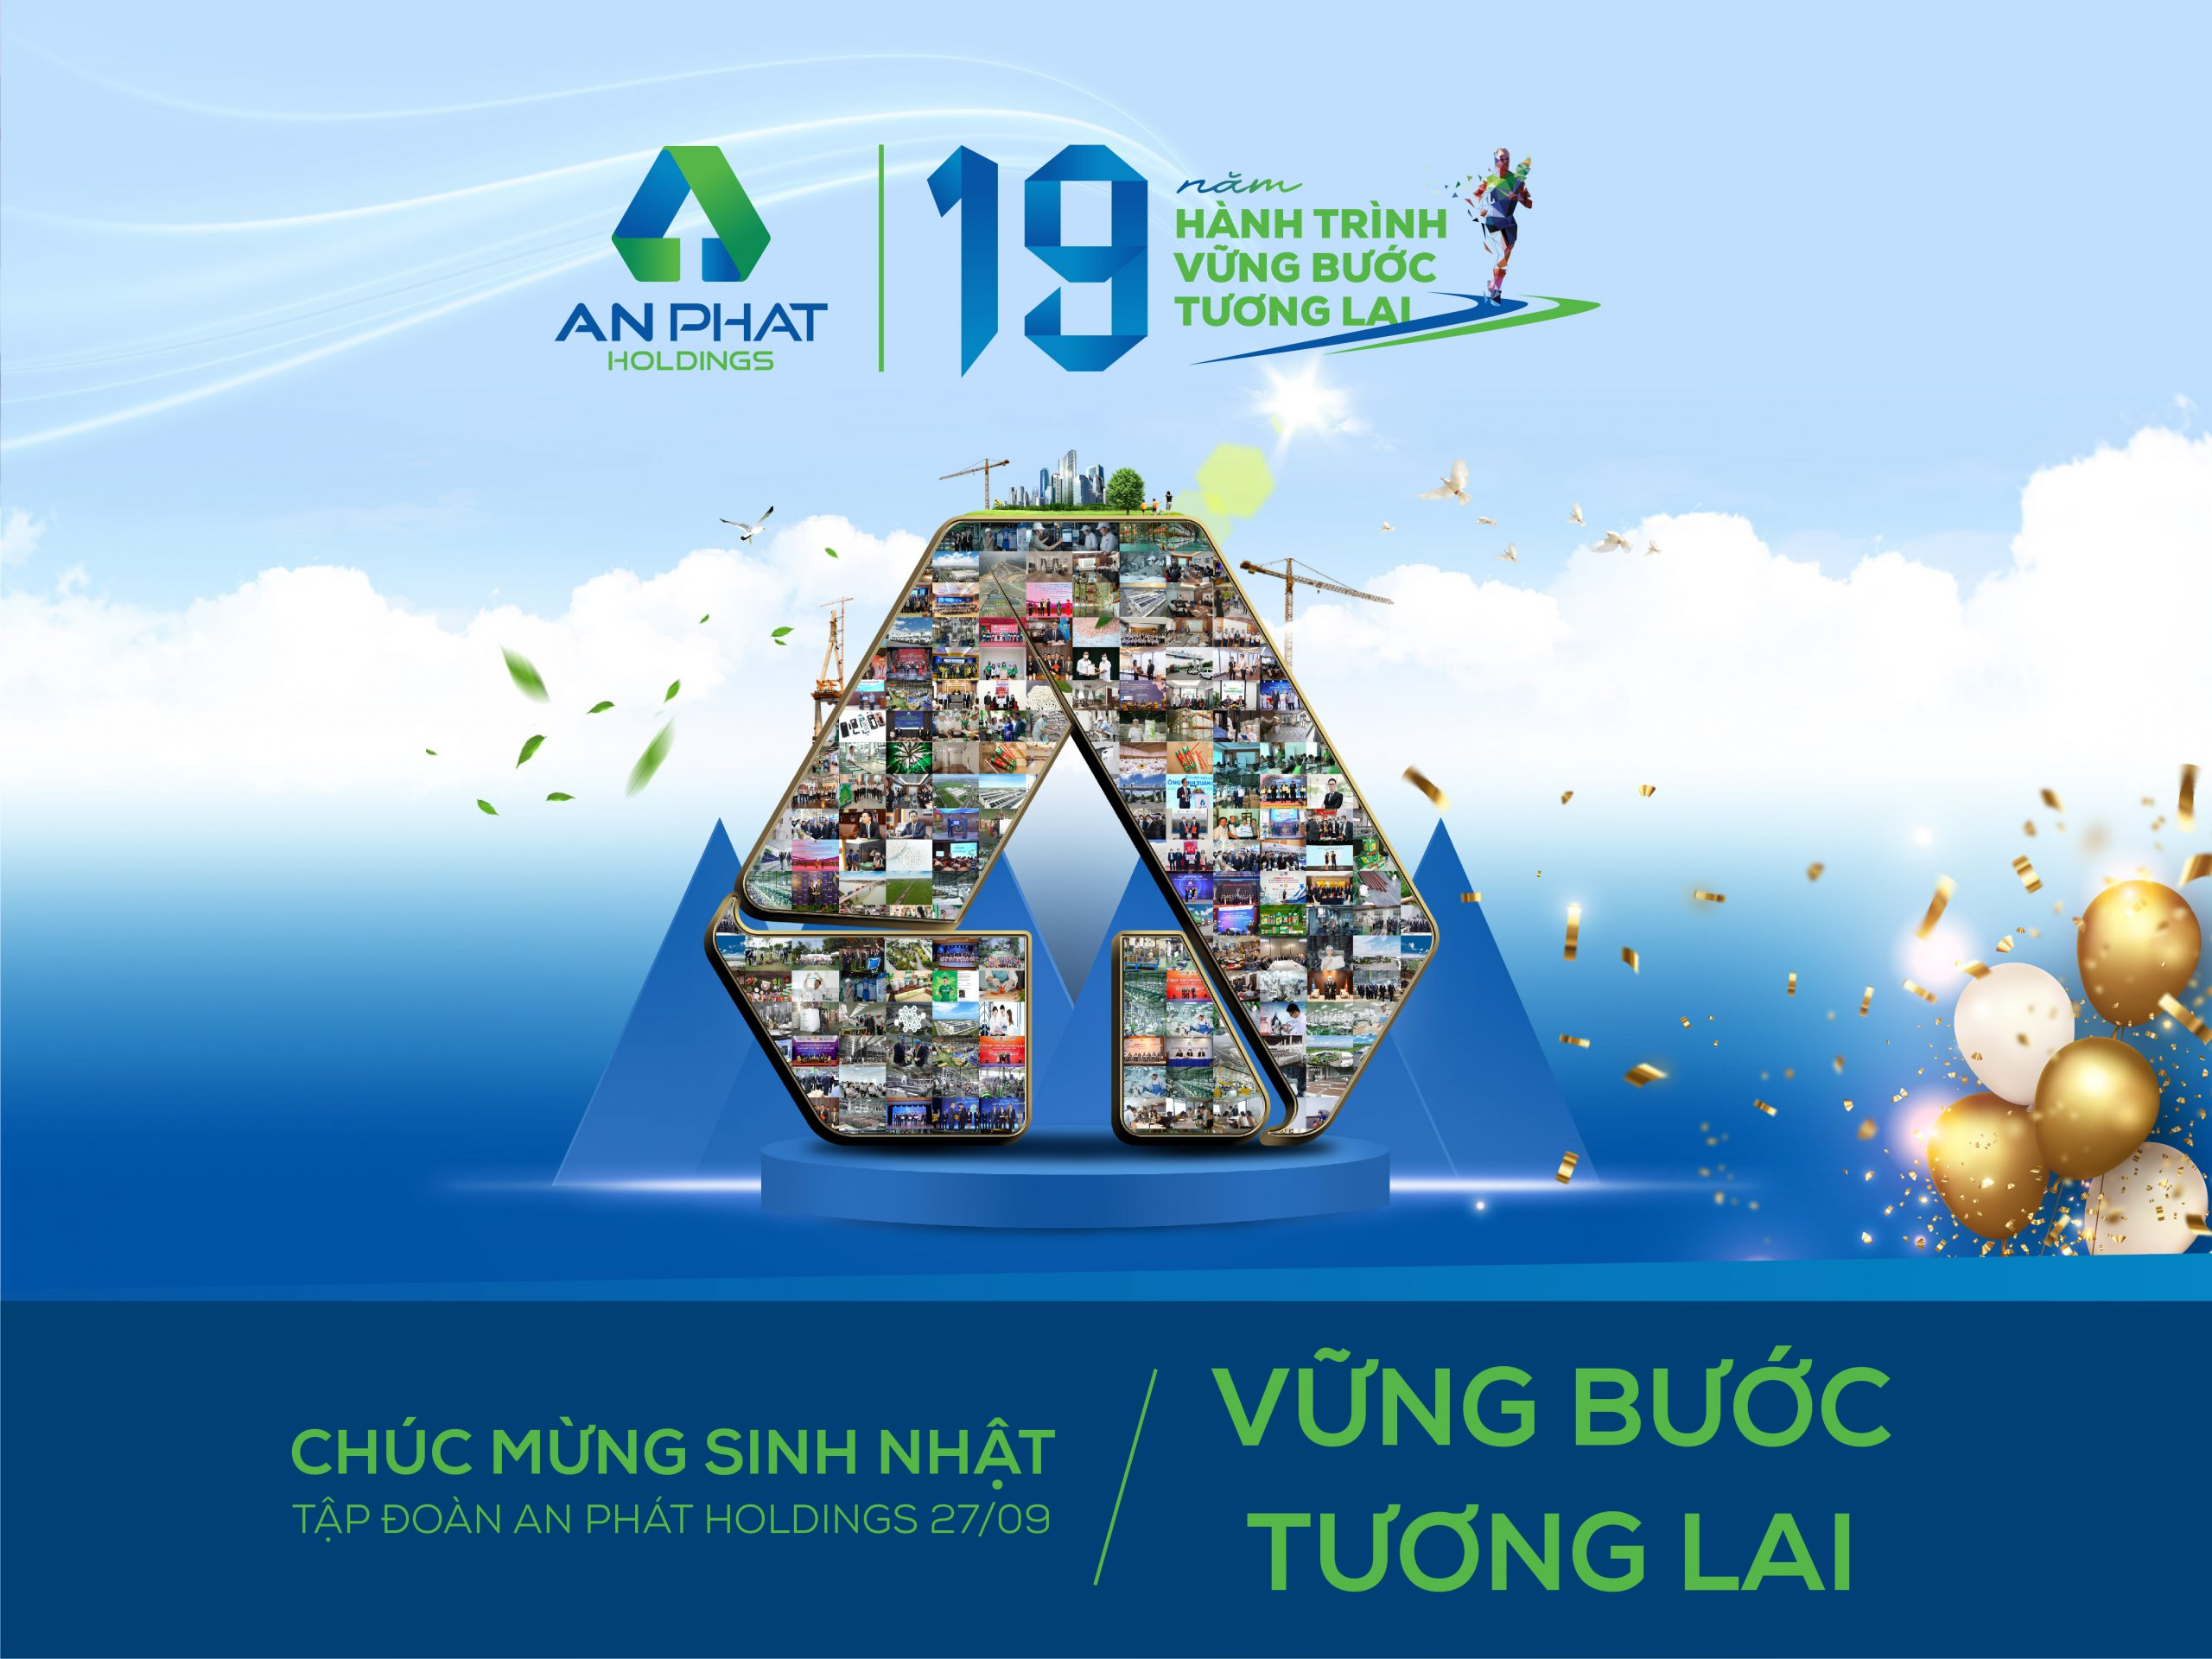 An Phat Holdings – 19 years of celebration (September 27th 2002 – September 27th 2021): A journey towards a sustainable future